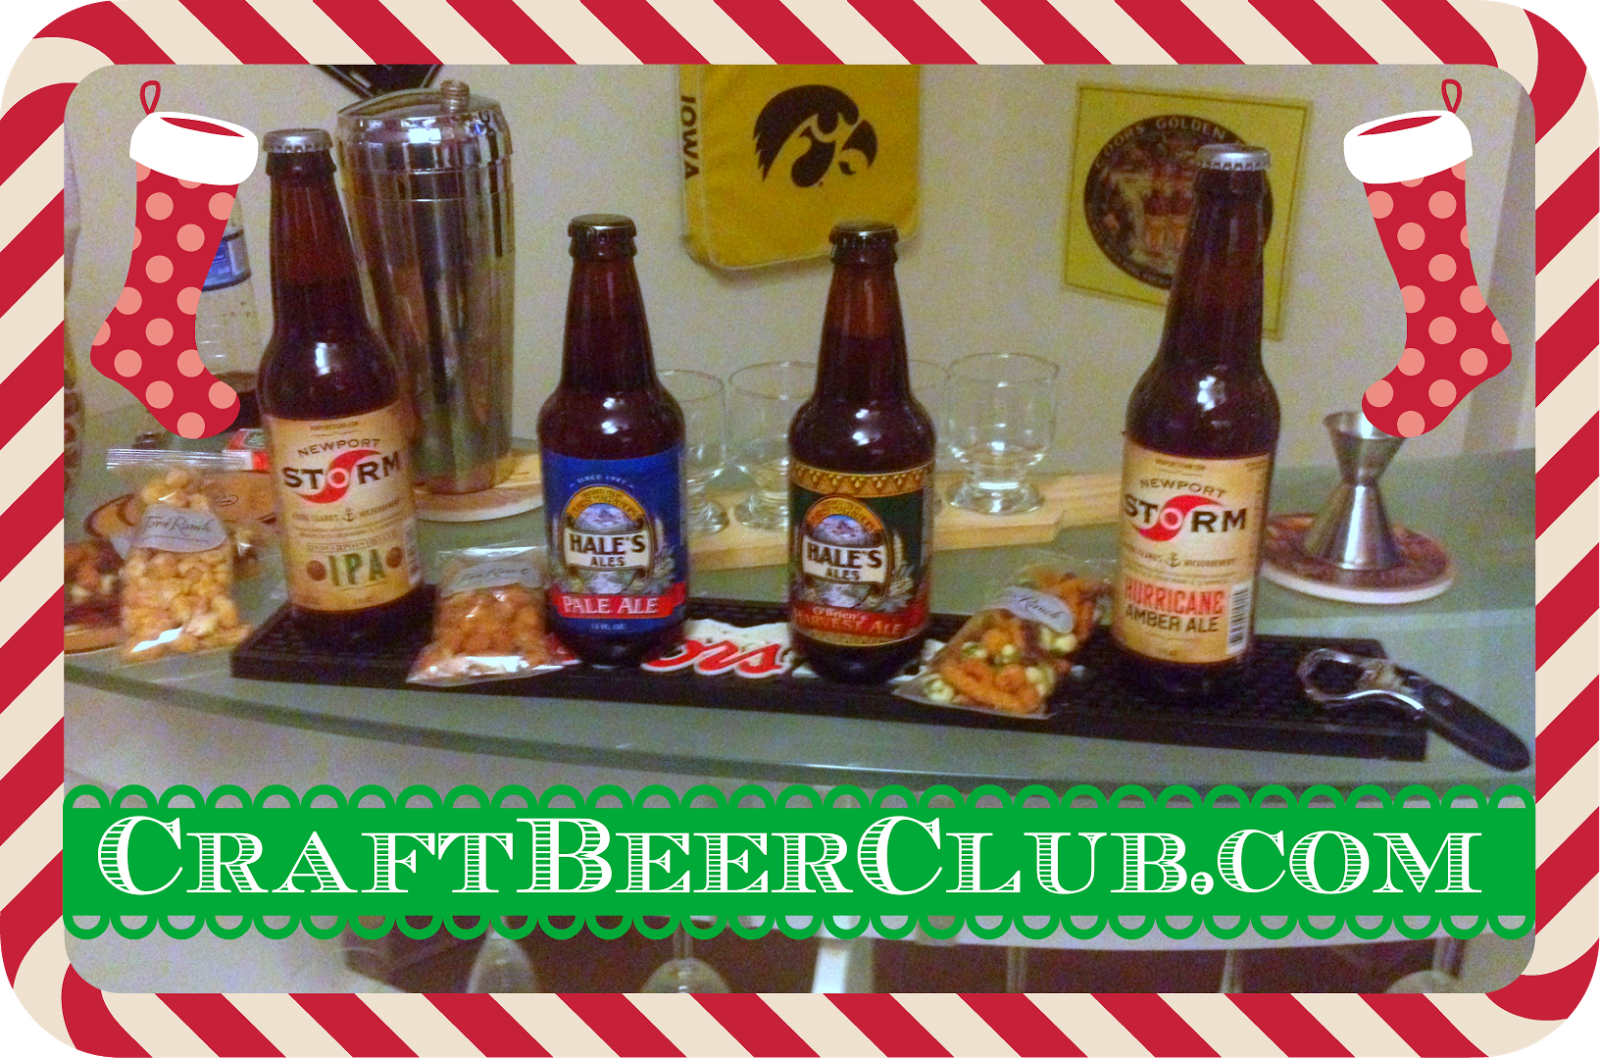 Product craft beer of the month club the food hussy for Best craft beer of the month club